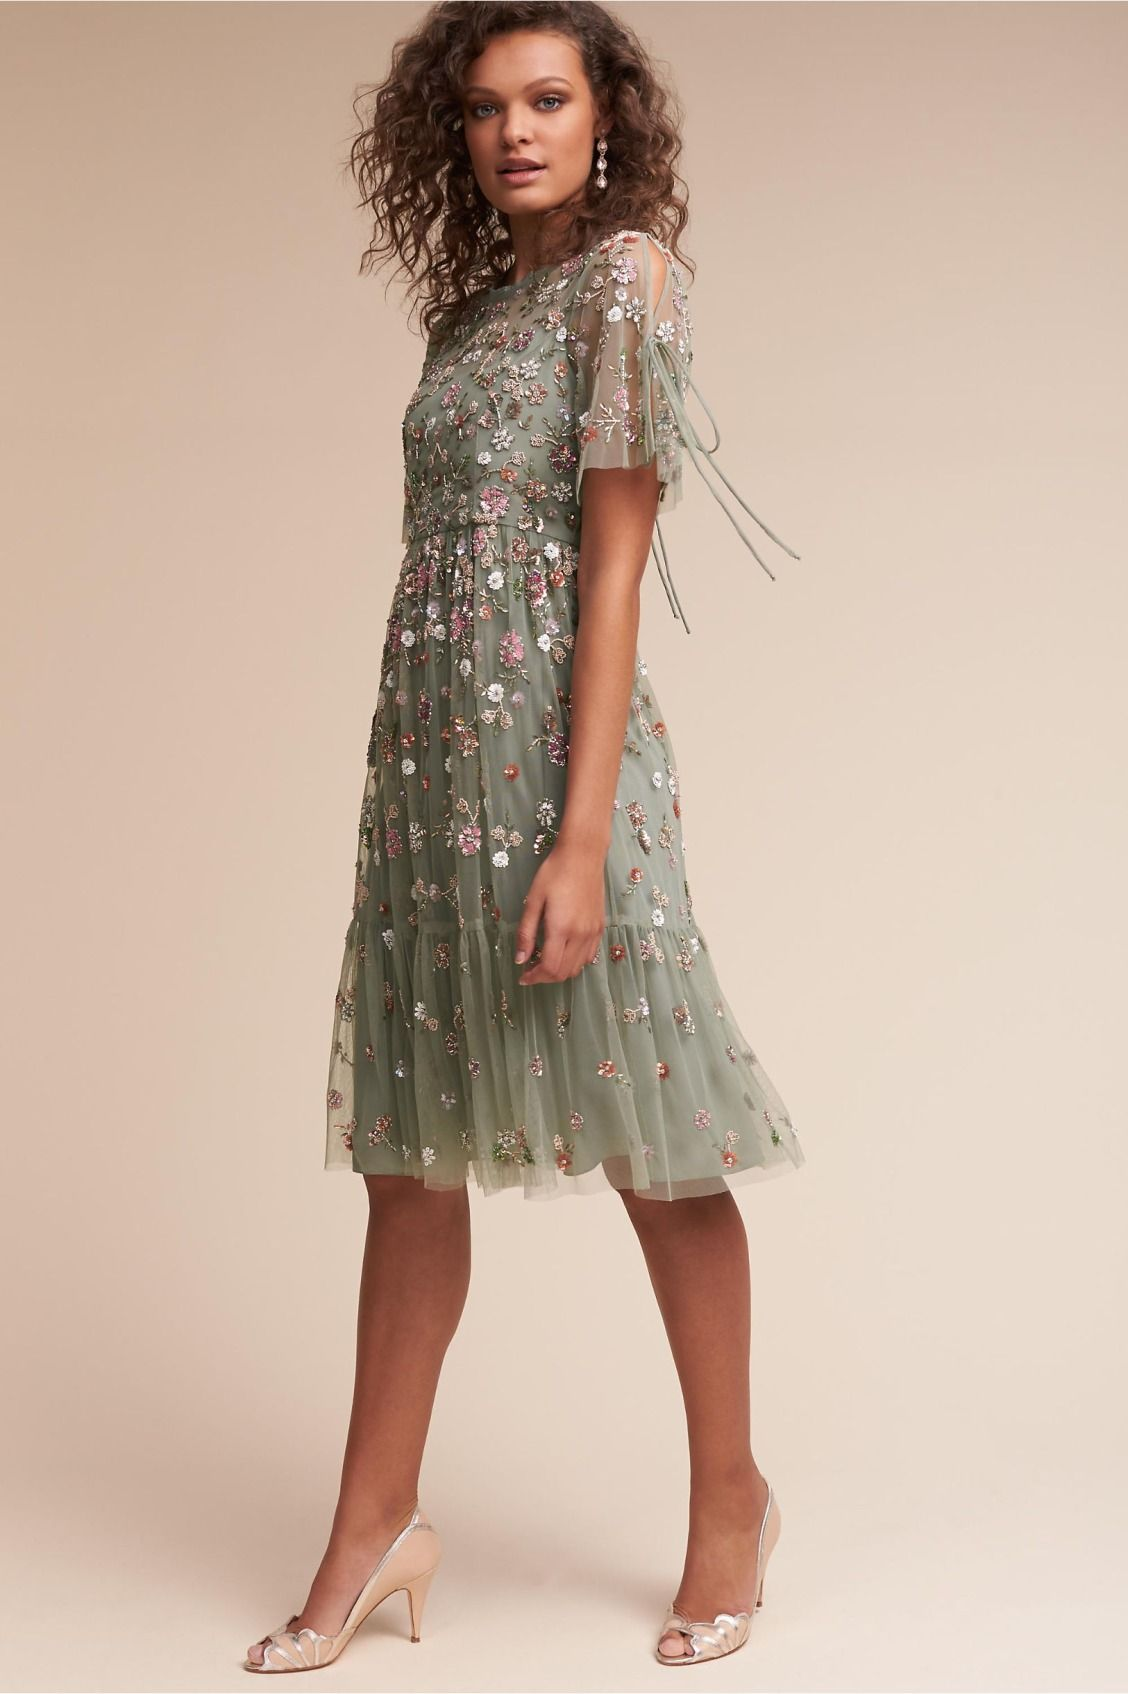 Dresses to wear to a beach wedding as a guest  full of whimsy and fancy  Bobbi Dress from BHLDN  Dresses